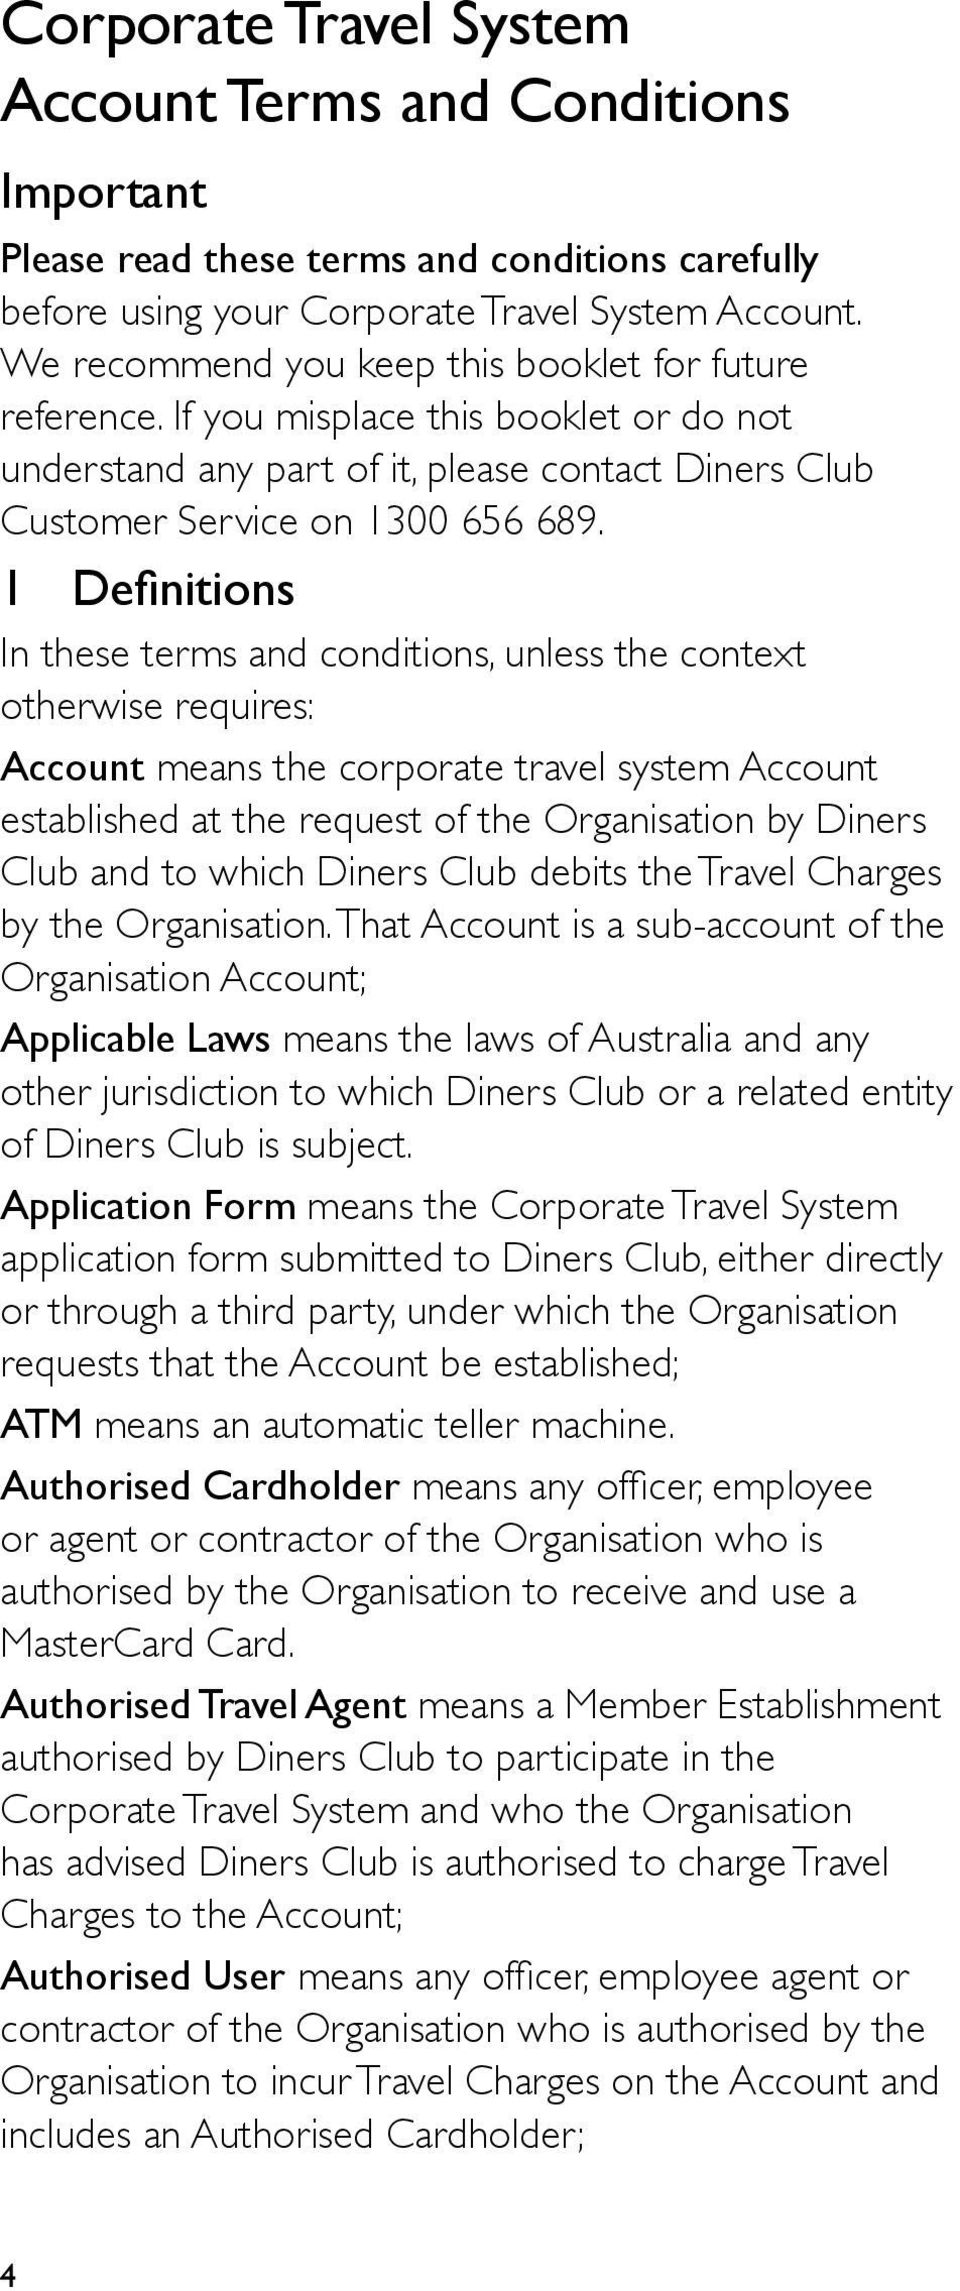 1 Definitions In these terms and conditions, unless the context otherwise requires: Account means the corporate travel system Account established at the request of the Organisation by Diners Club and